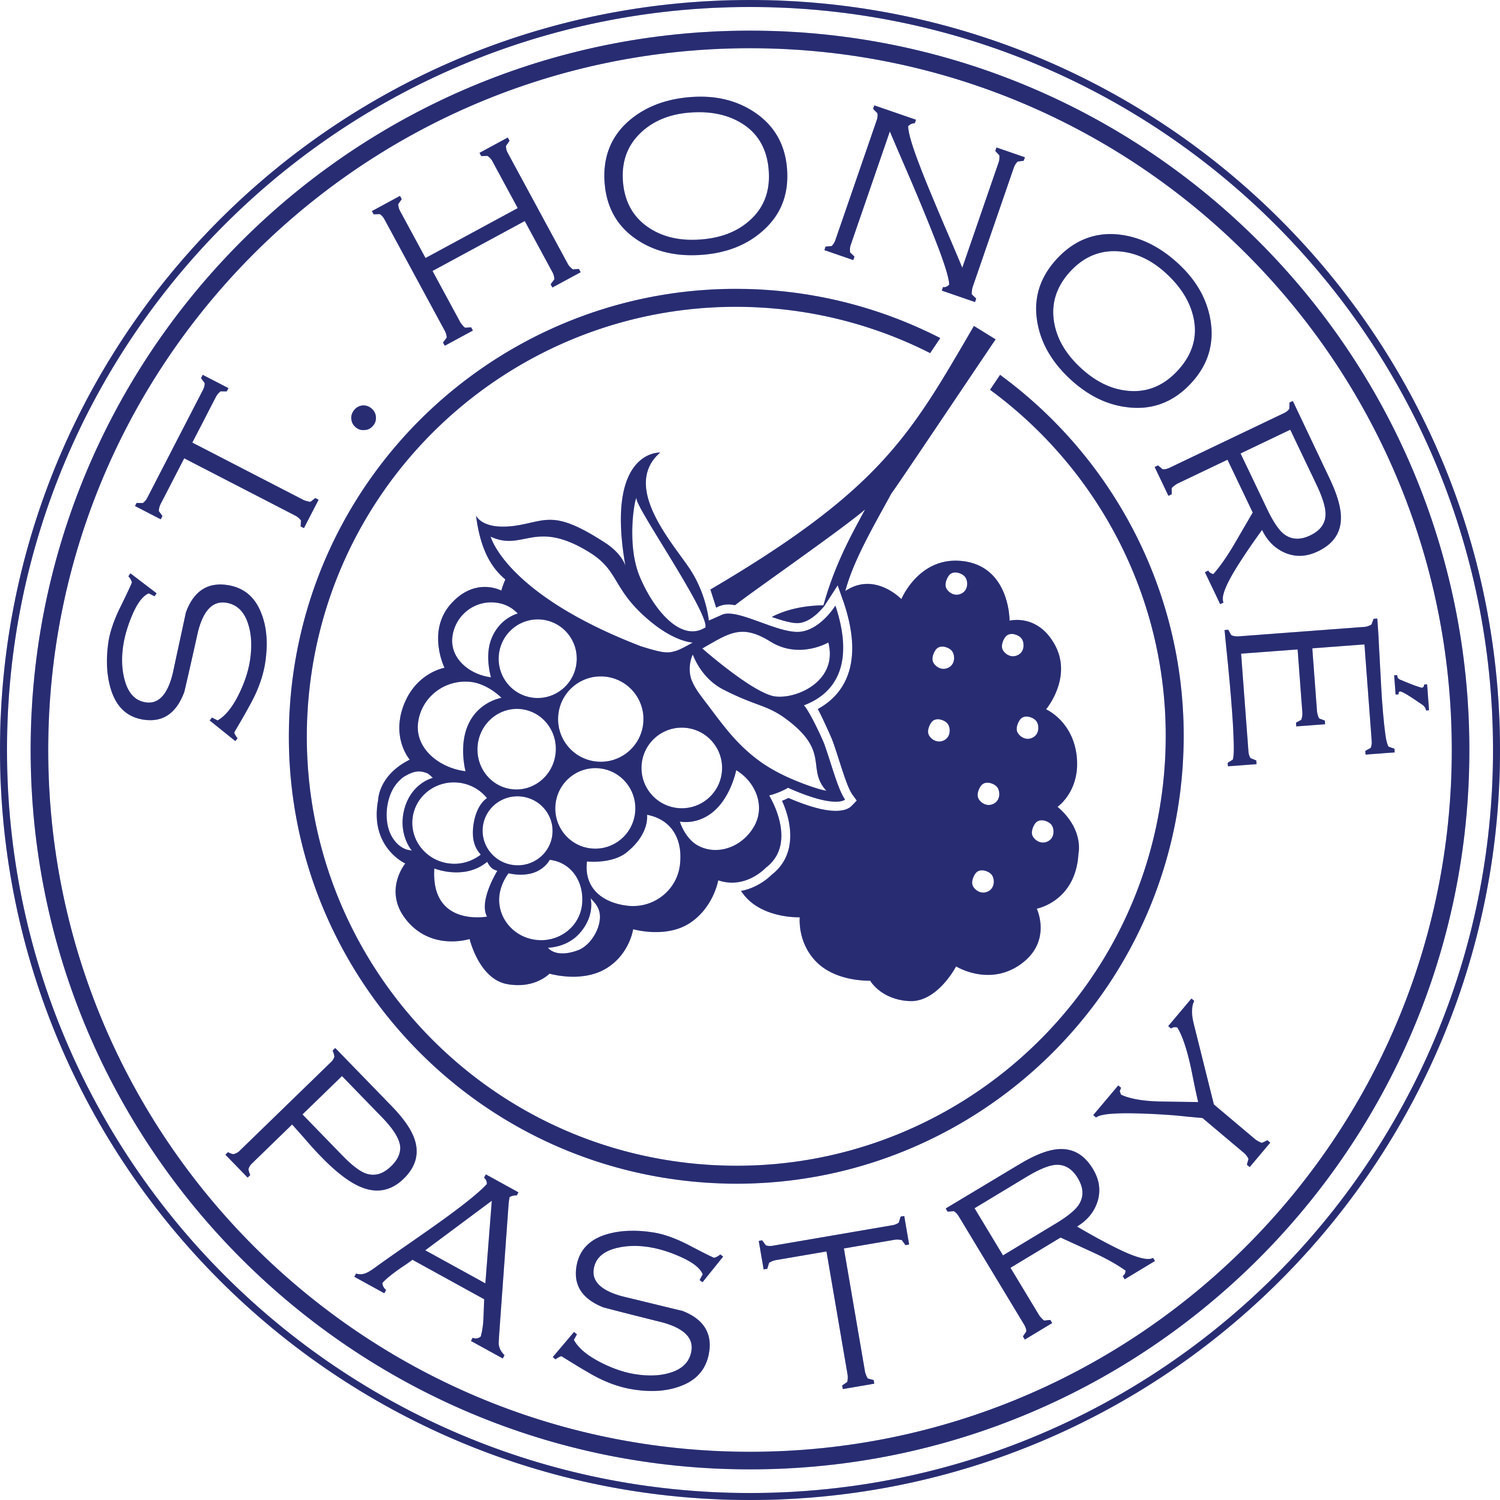 St. Honoré Pastry